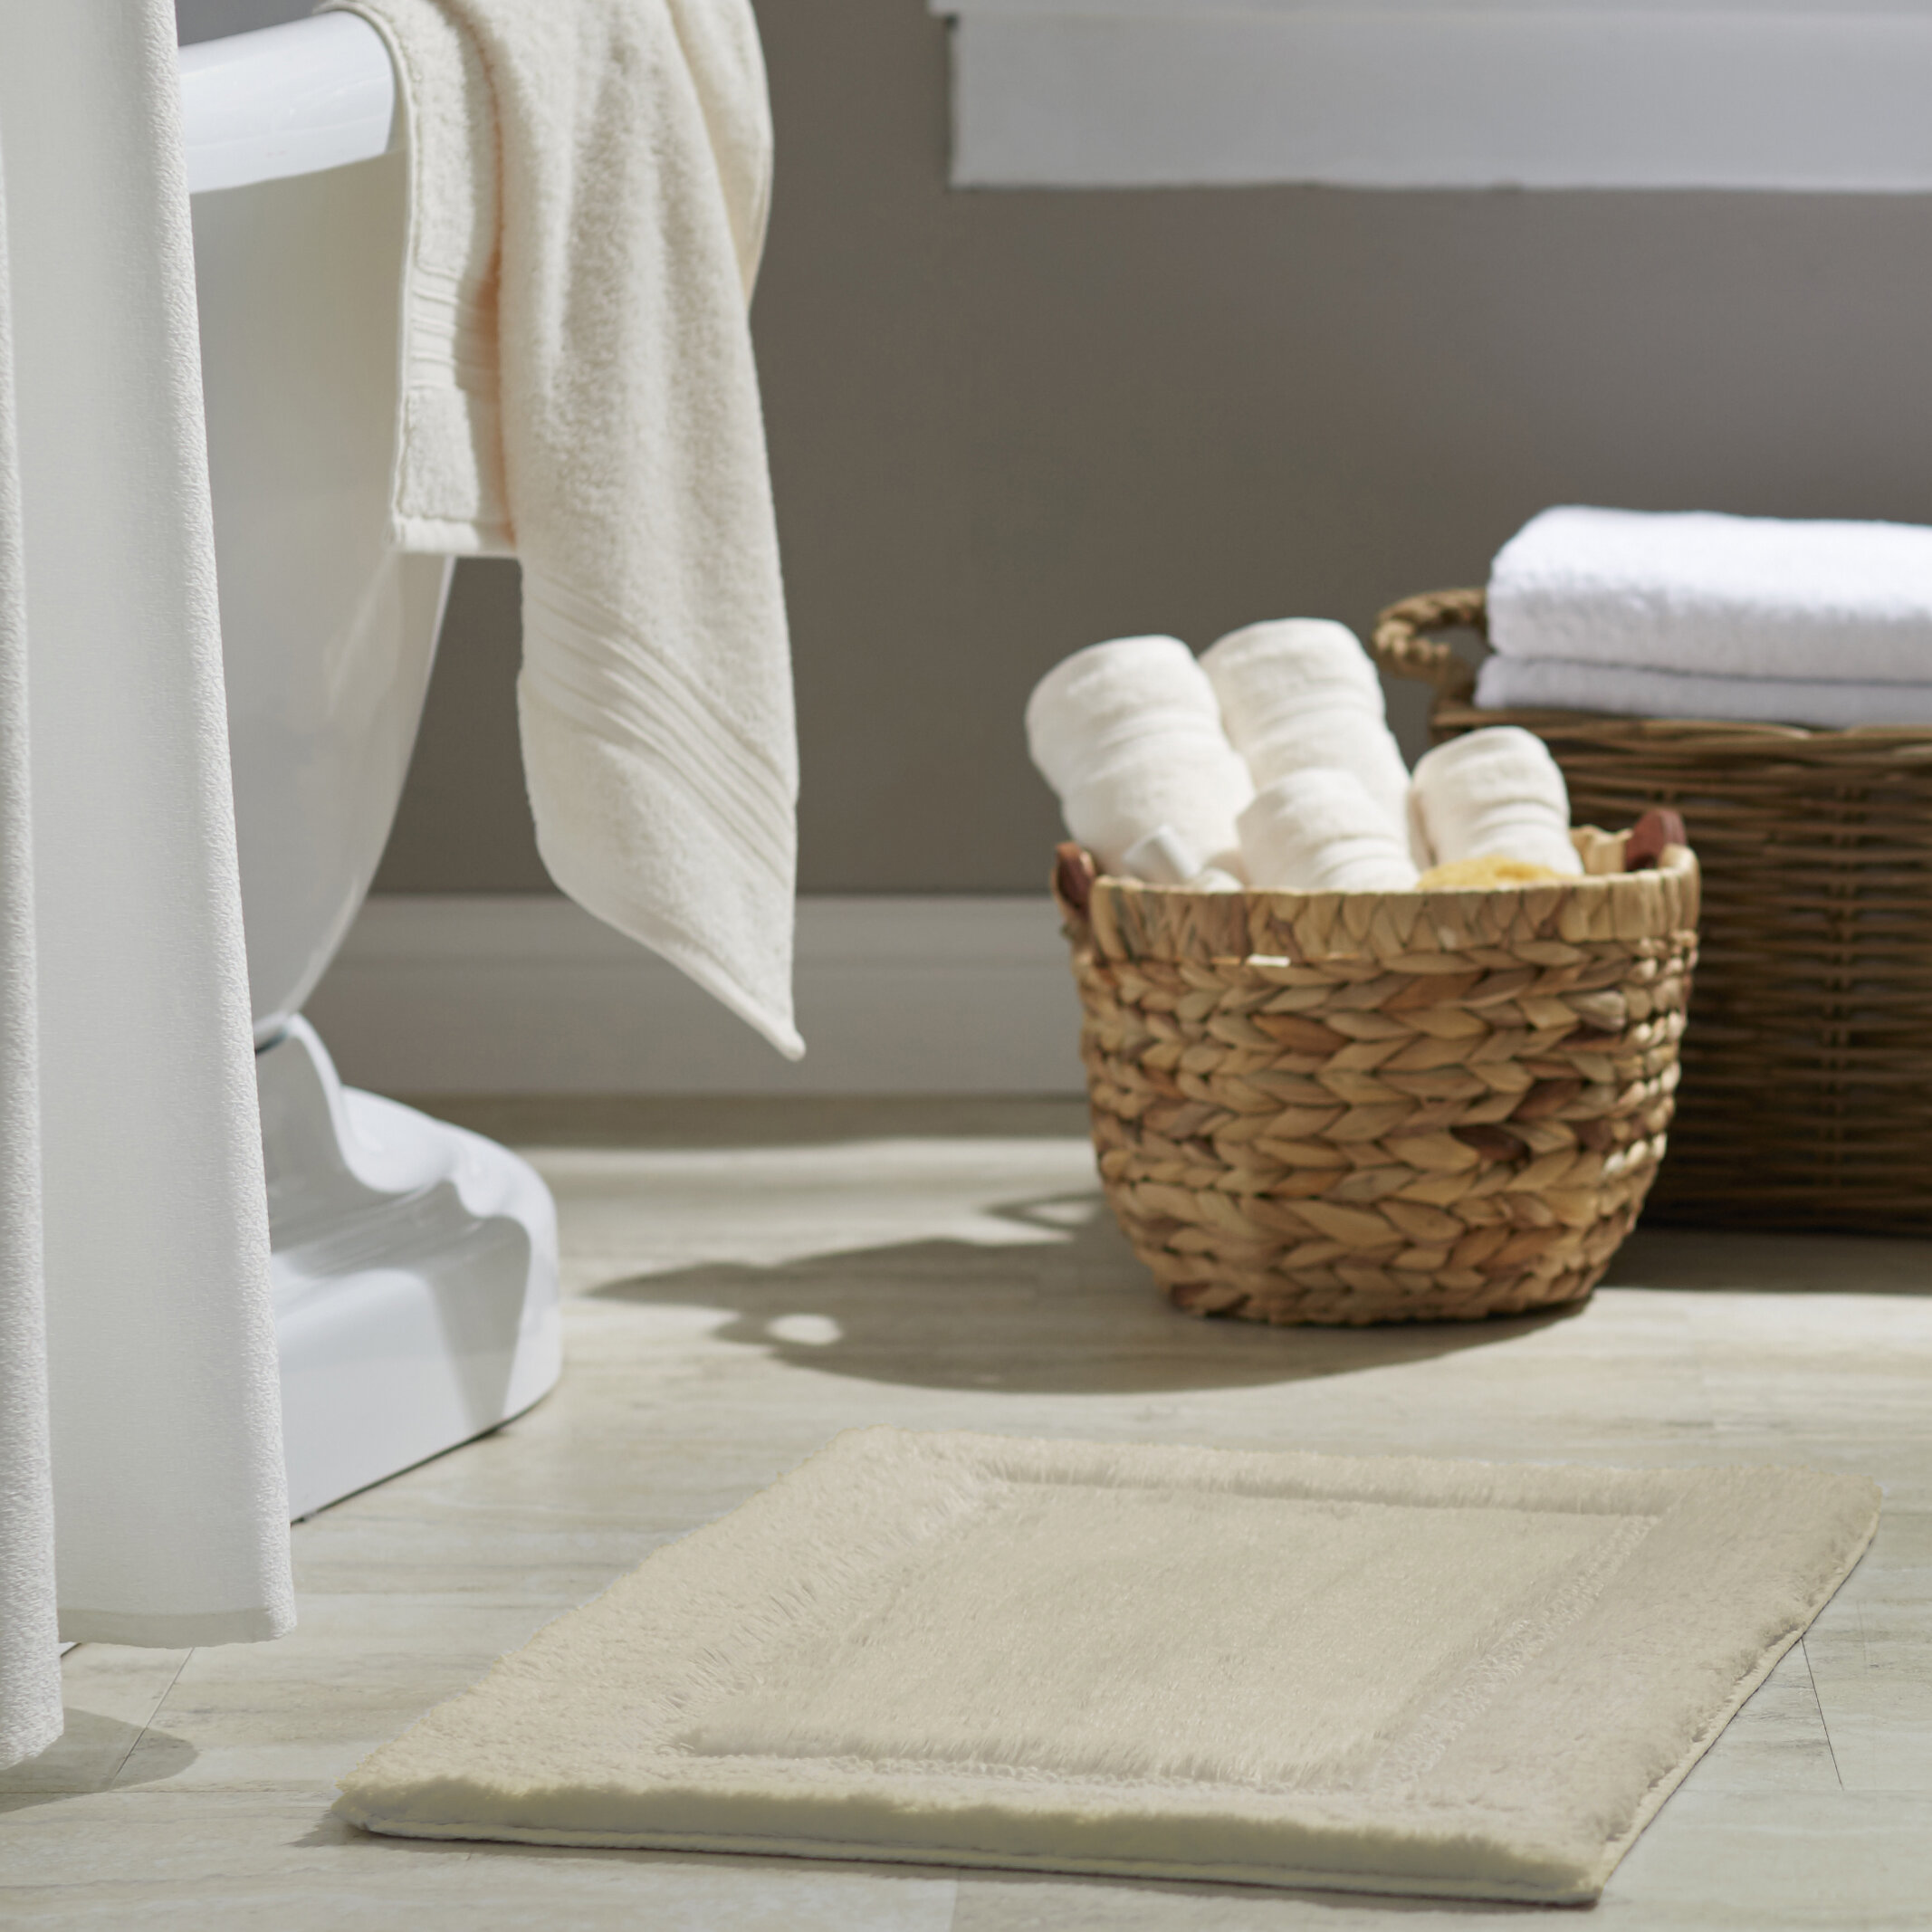 set towel awesome rug bhp of piece sets waterfront bathroom series hardware with